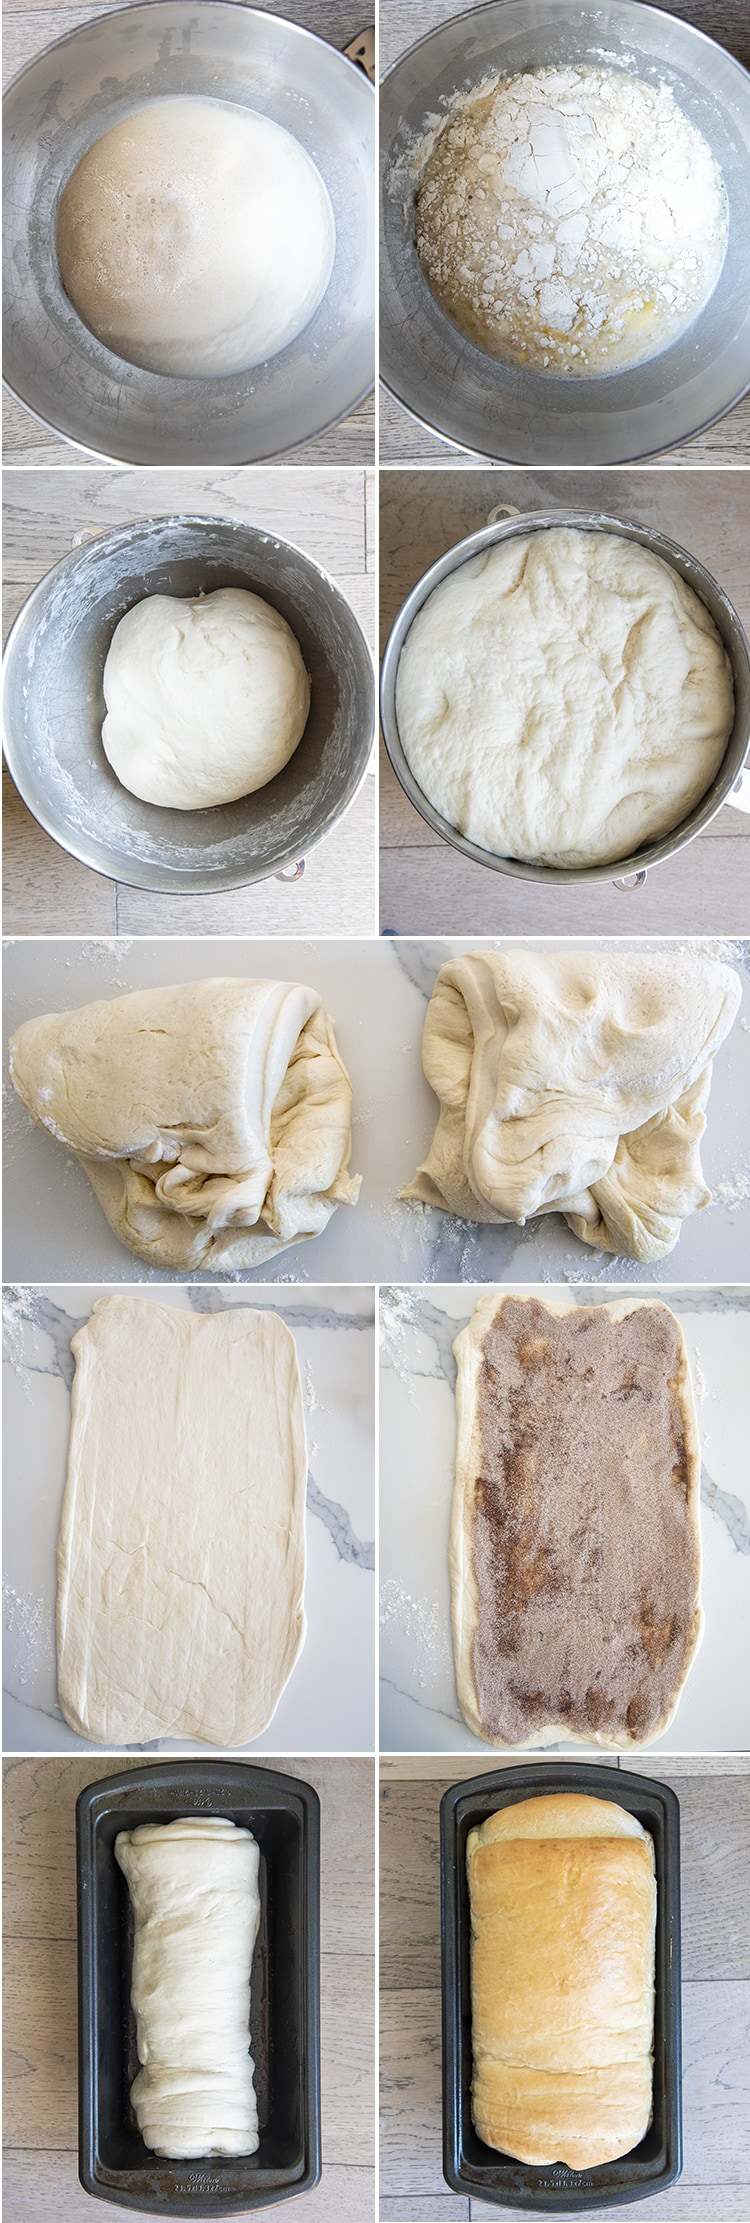 Step by step photos how to make cinnamon swirl bread